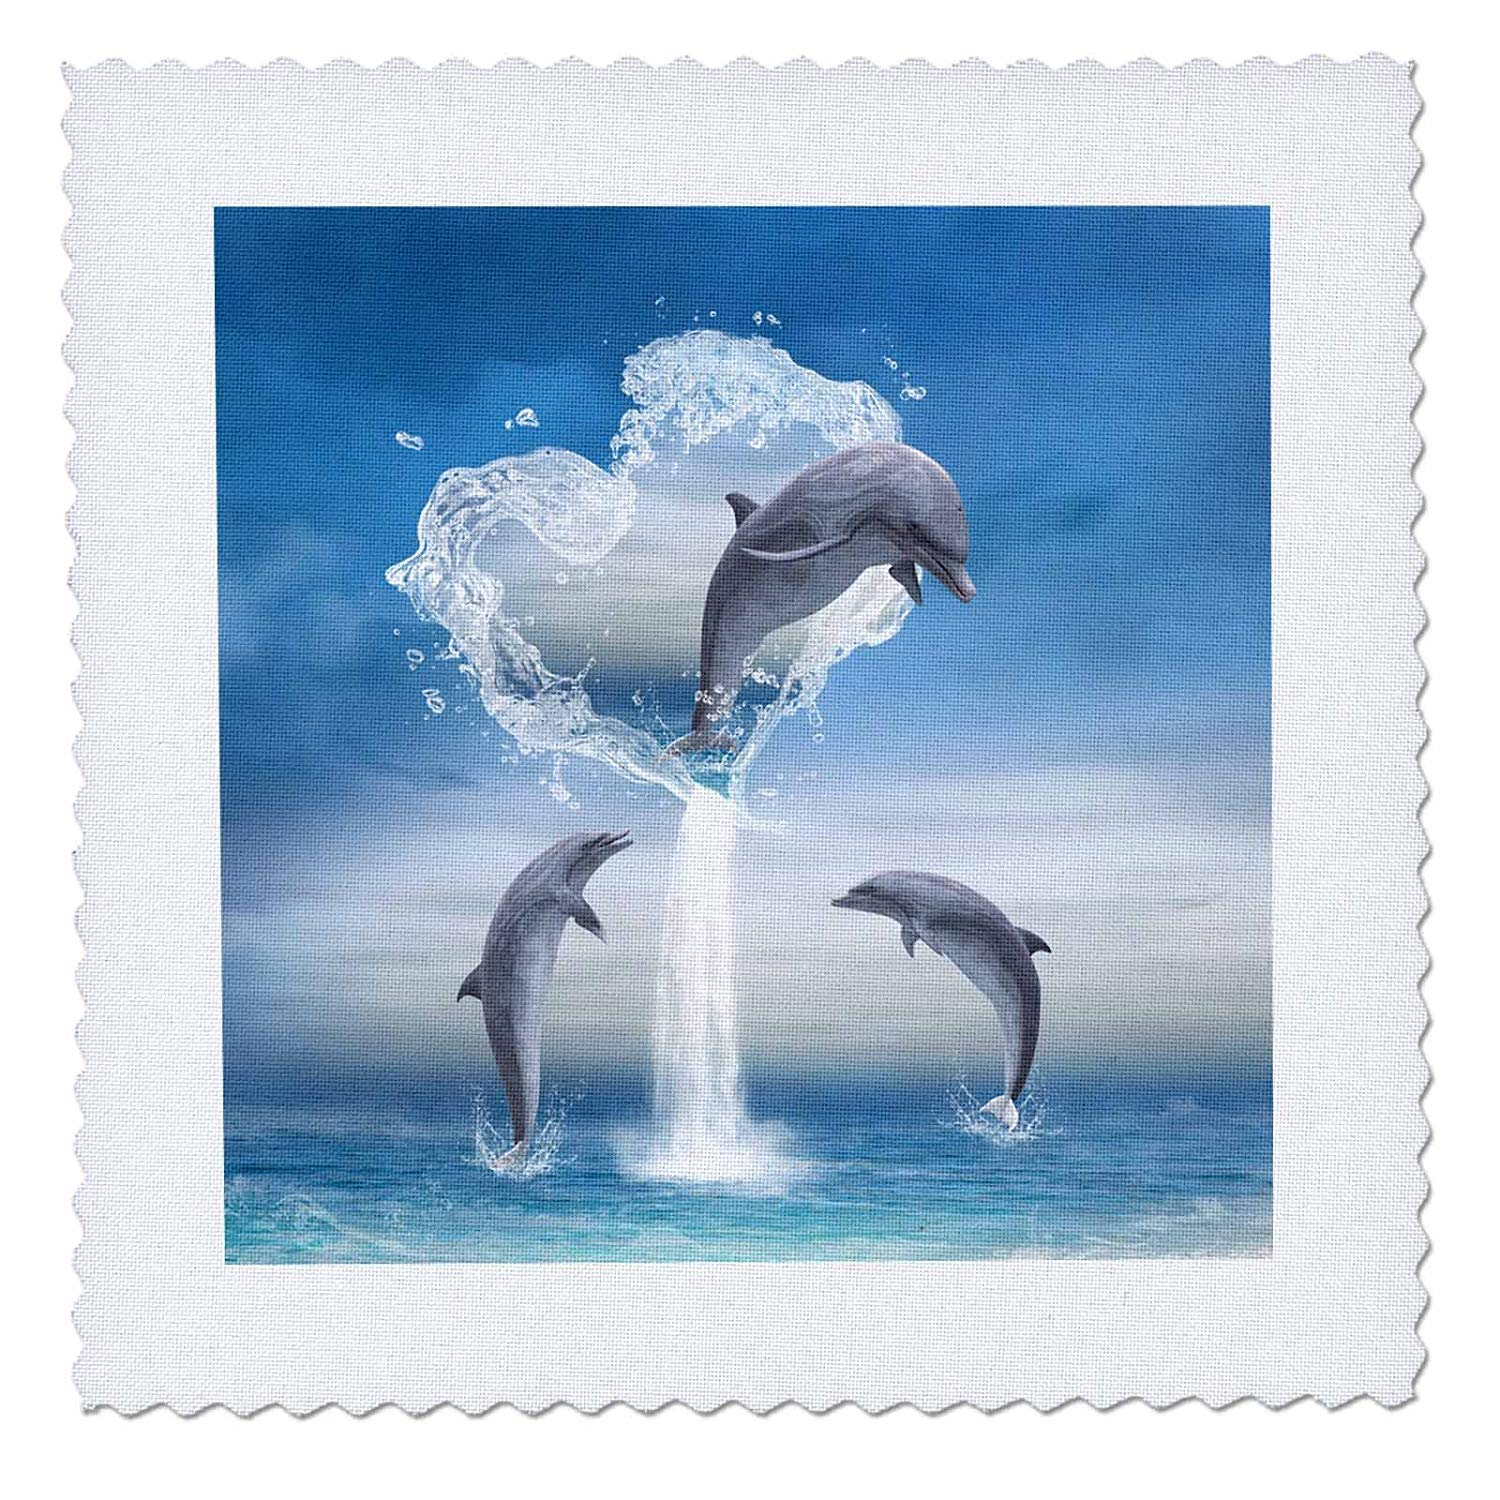 3dRose A Dolphin Jumps Out of A Water Heart Into The Ocean - Quilt Square, 6 by 6-Inch (qs_172929_2)